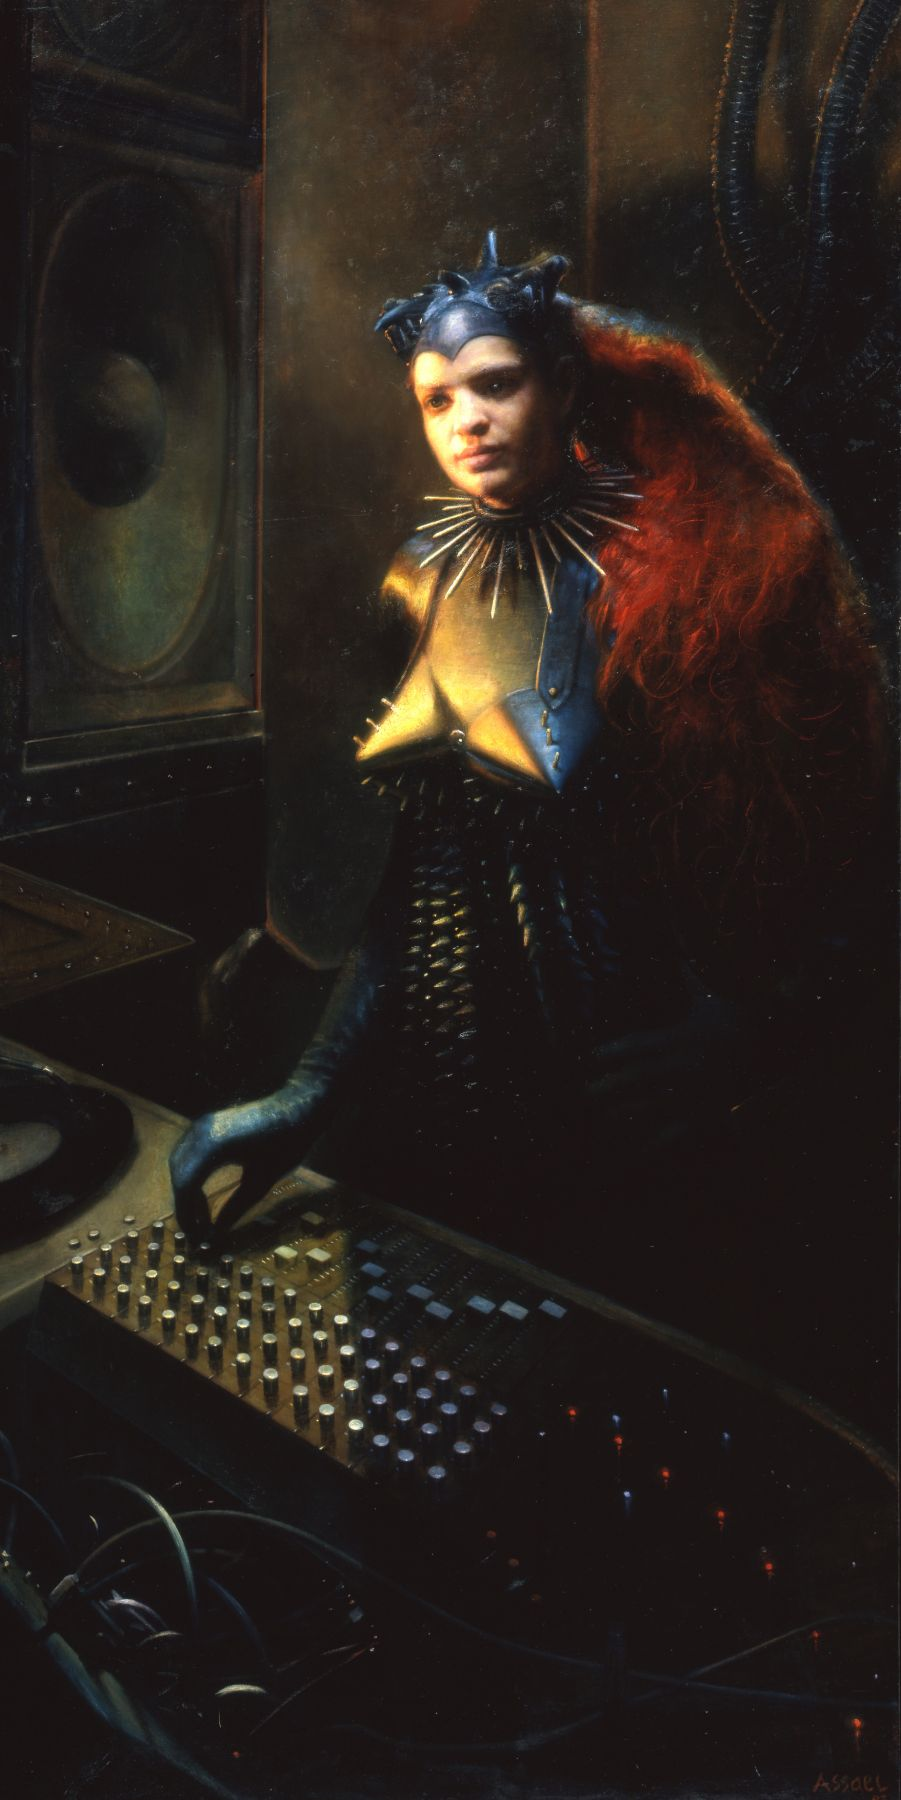 Steven Assael, Mixing the Mix, 2002, oil on canvas, 84 1/8 x 42 1/4 inches